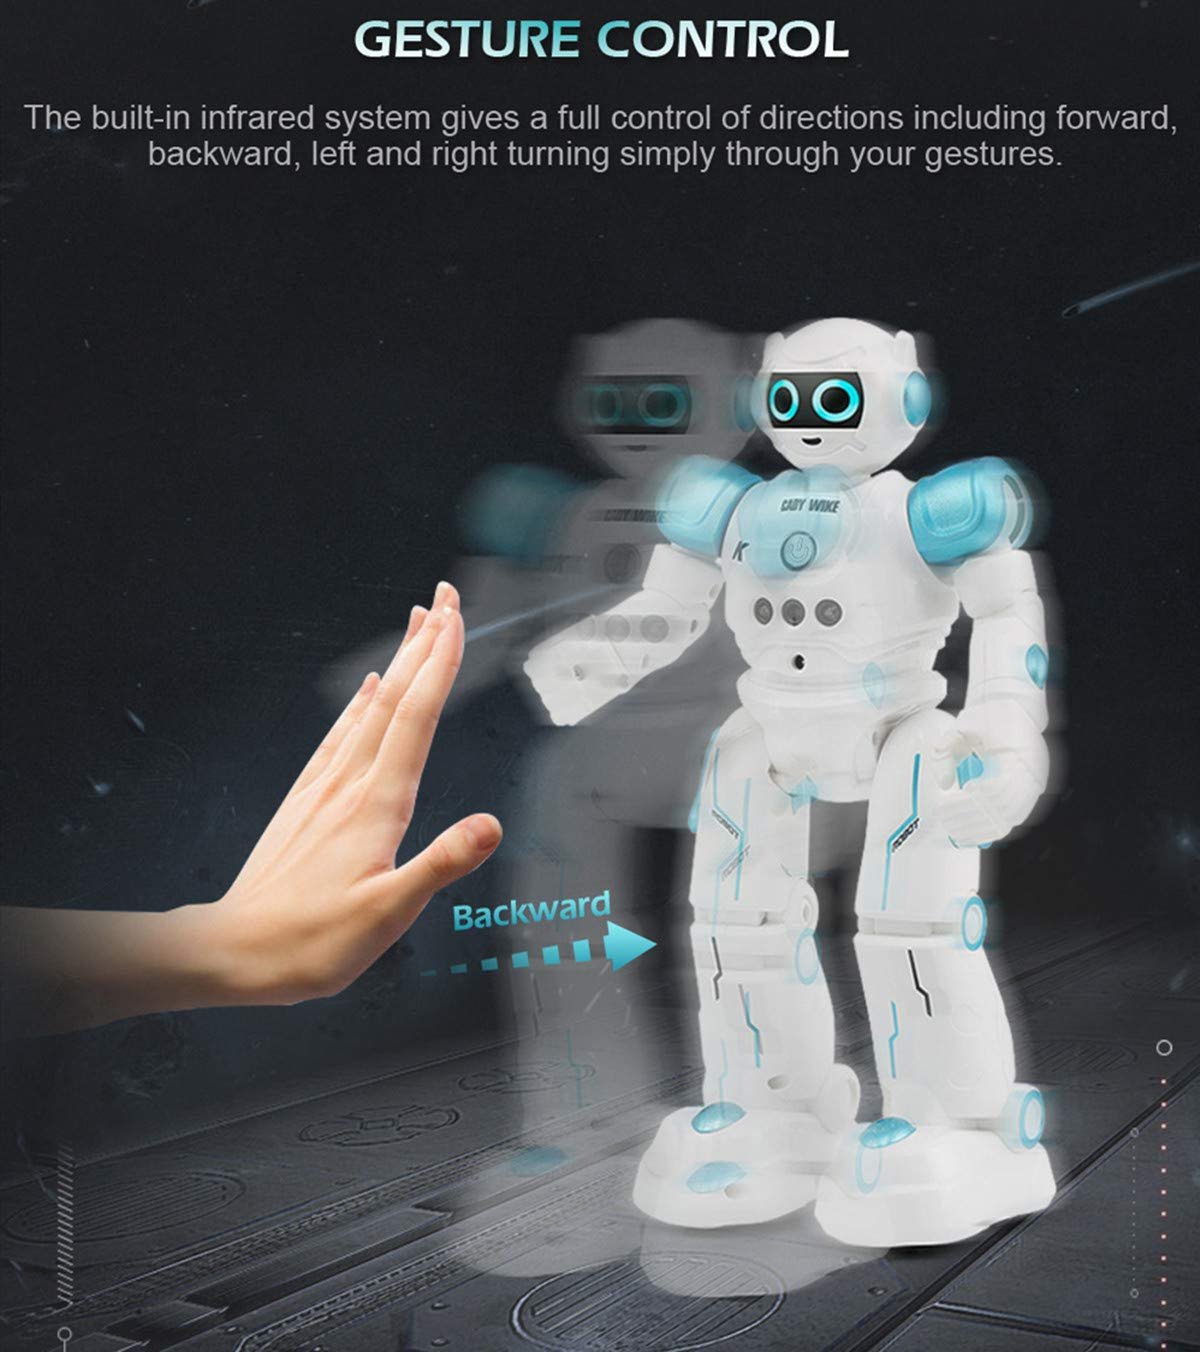 WEECOC Smart Robot Toys Gesture Control Remote Control Robot Kids Toys Birthday Can Singing Dancing Speaking Two Walking Models (Blue) by WEECOC (Image #6)